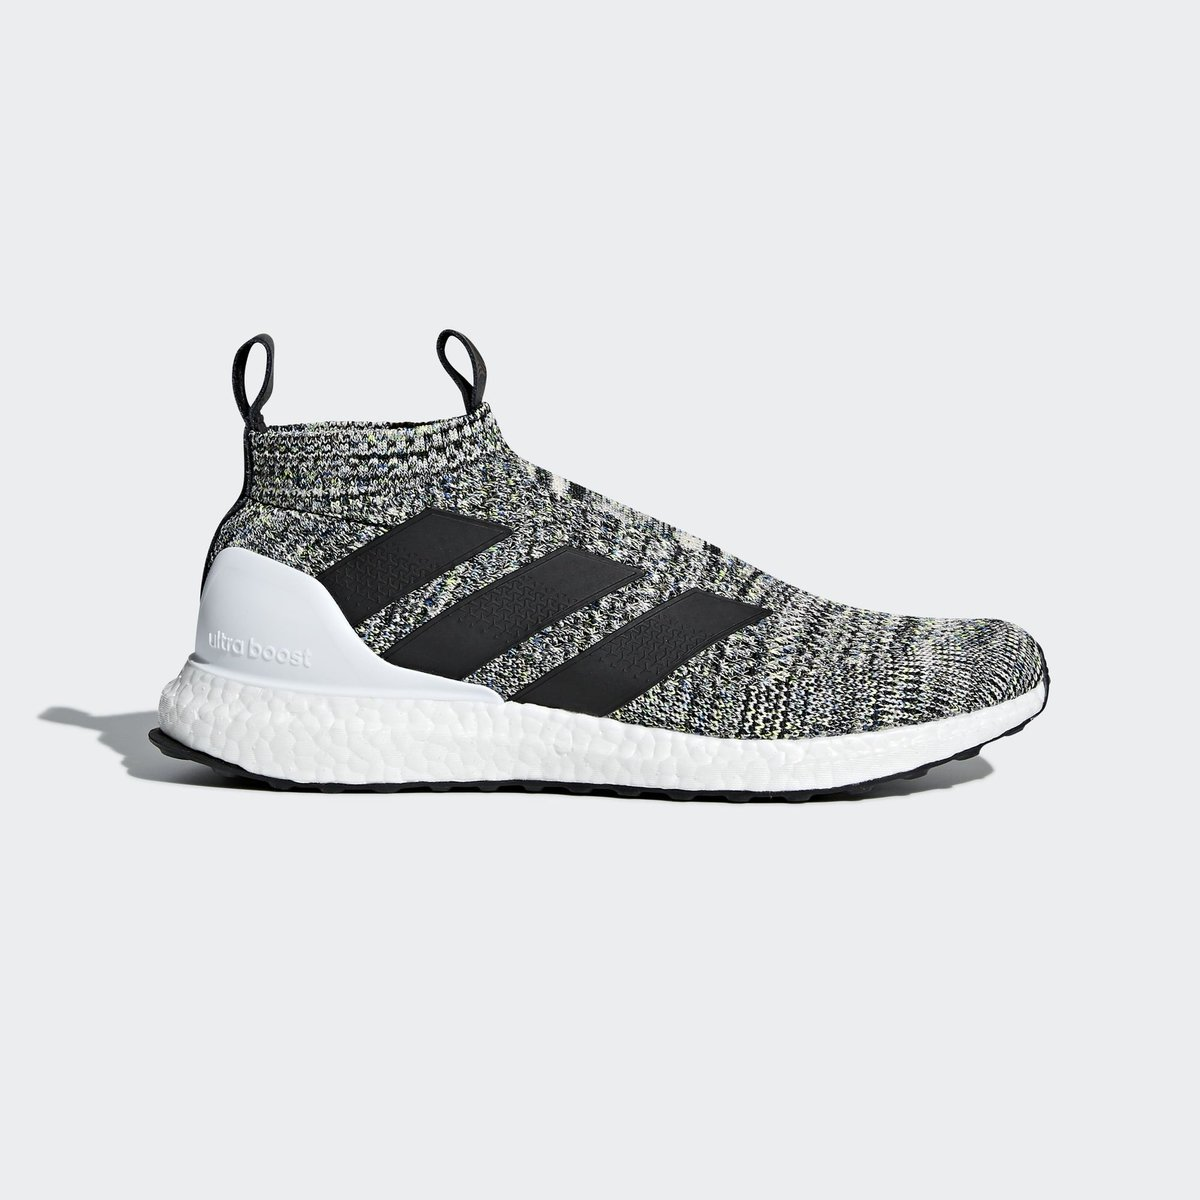 67e664dab452b ENDS TONIGHT! adidas ACE 16+ Ultra Boost. Retail  200. Now  98 shipped. Use  code ADIFF in cart. —  https   bit.ly 2Mw7Lva pic.twitter.com iL2fP2WnMa